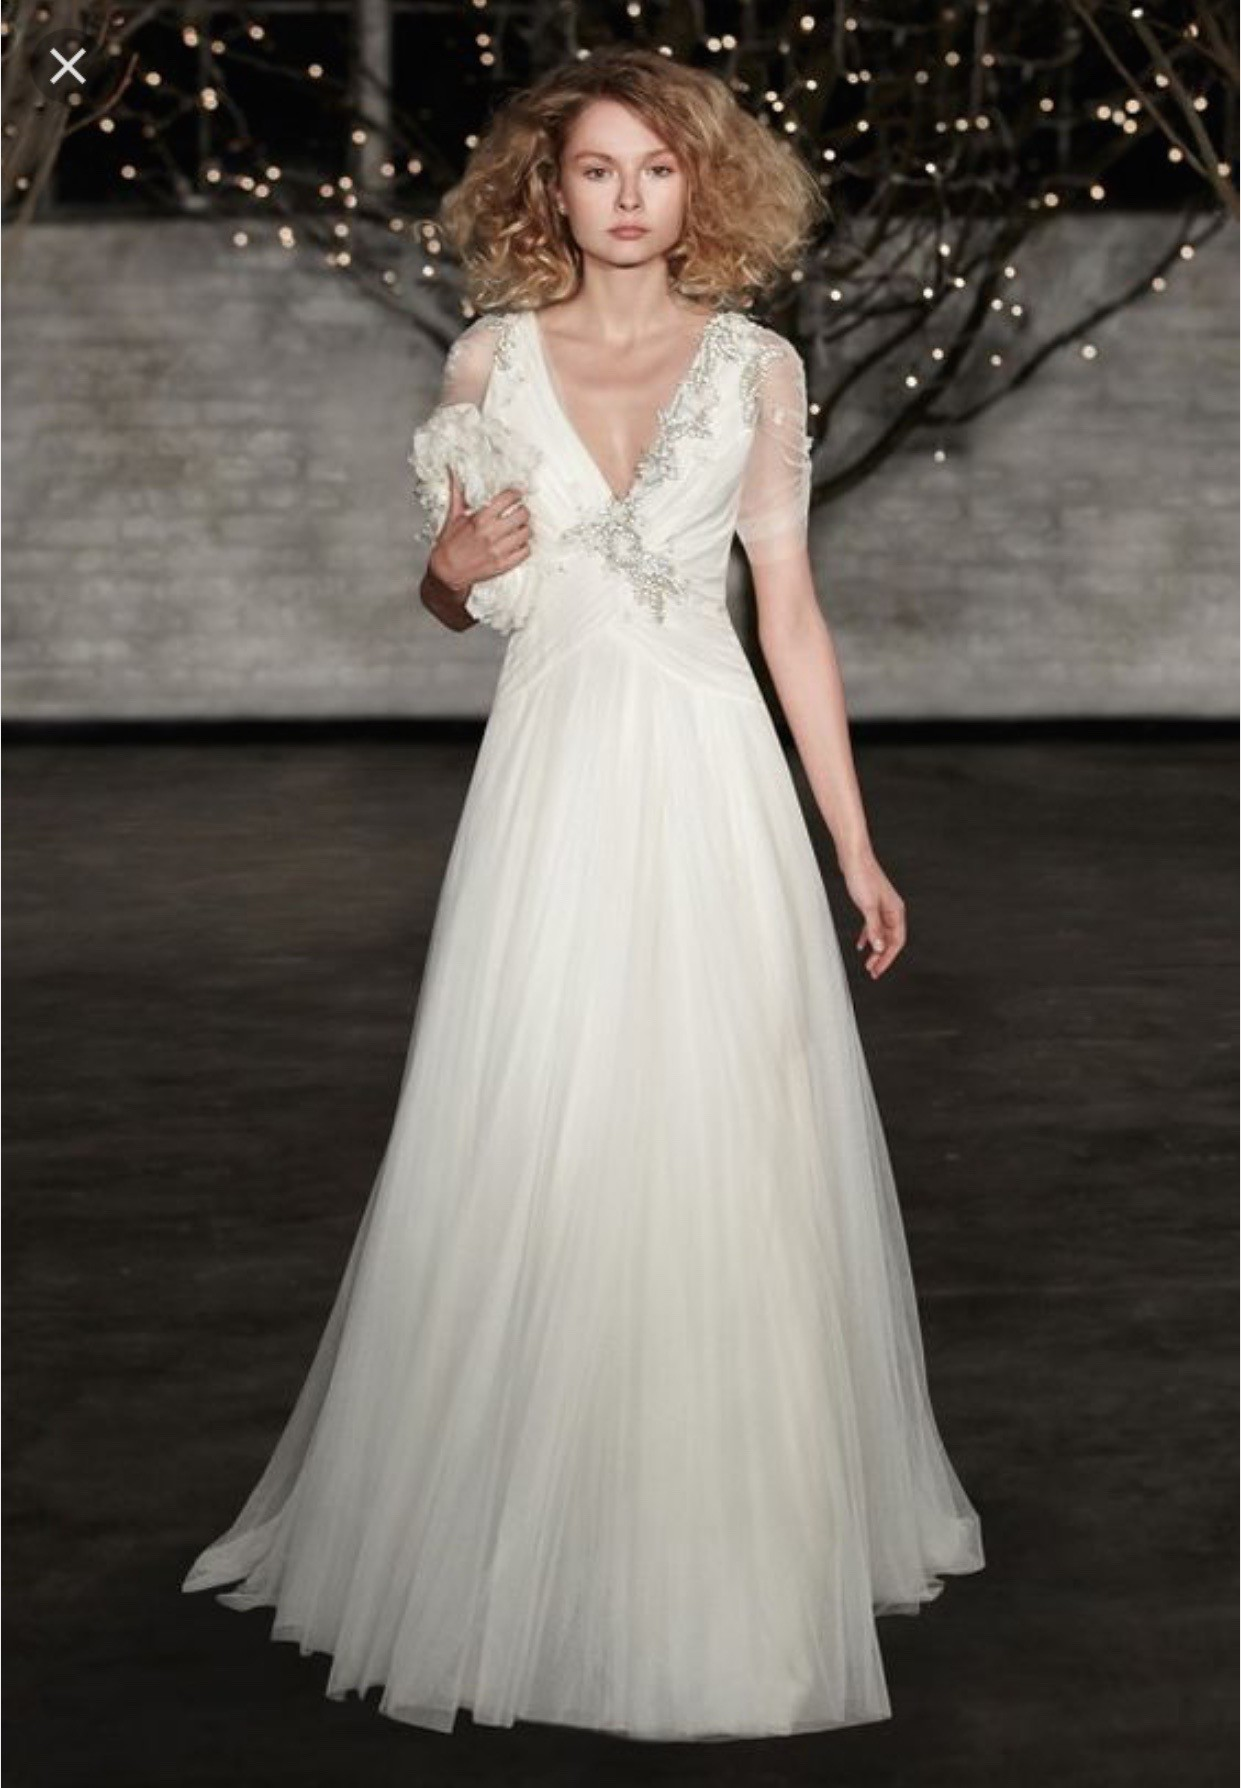 Jenny packham amour second hand wedding dress on sale 64 off for Second hand jenny packham wedding dress